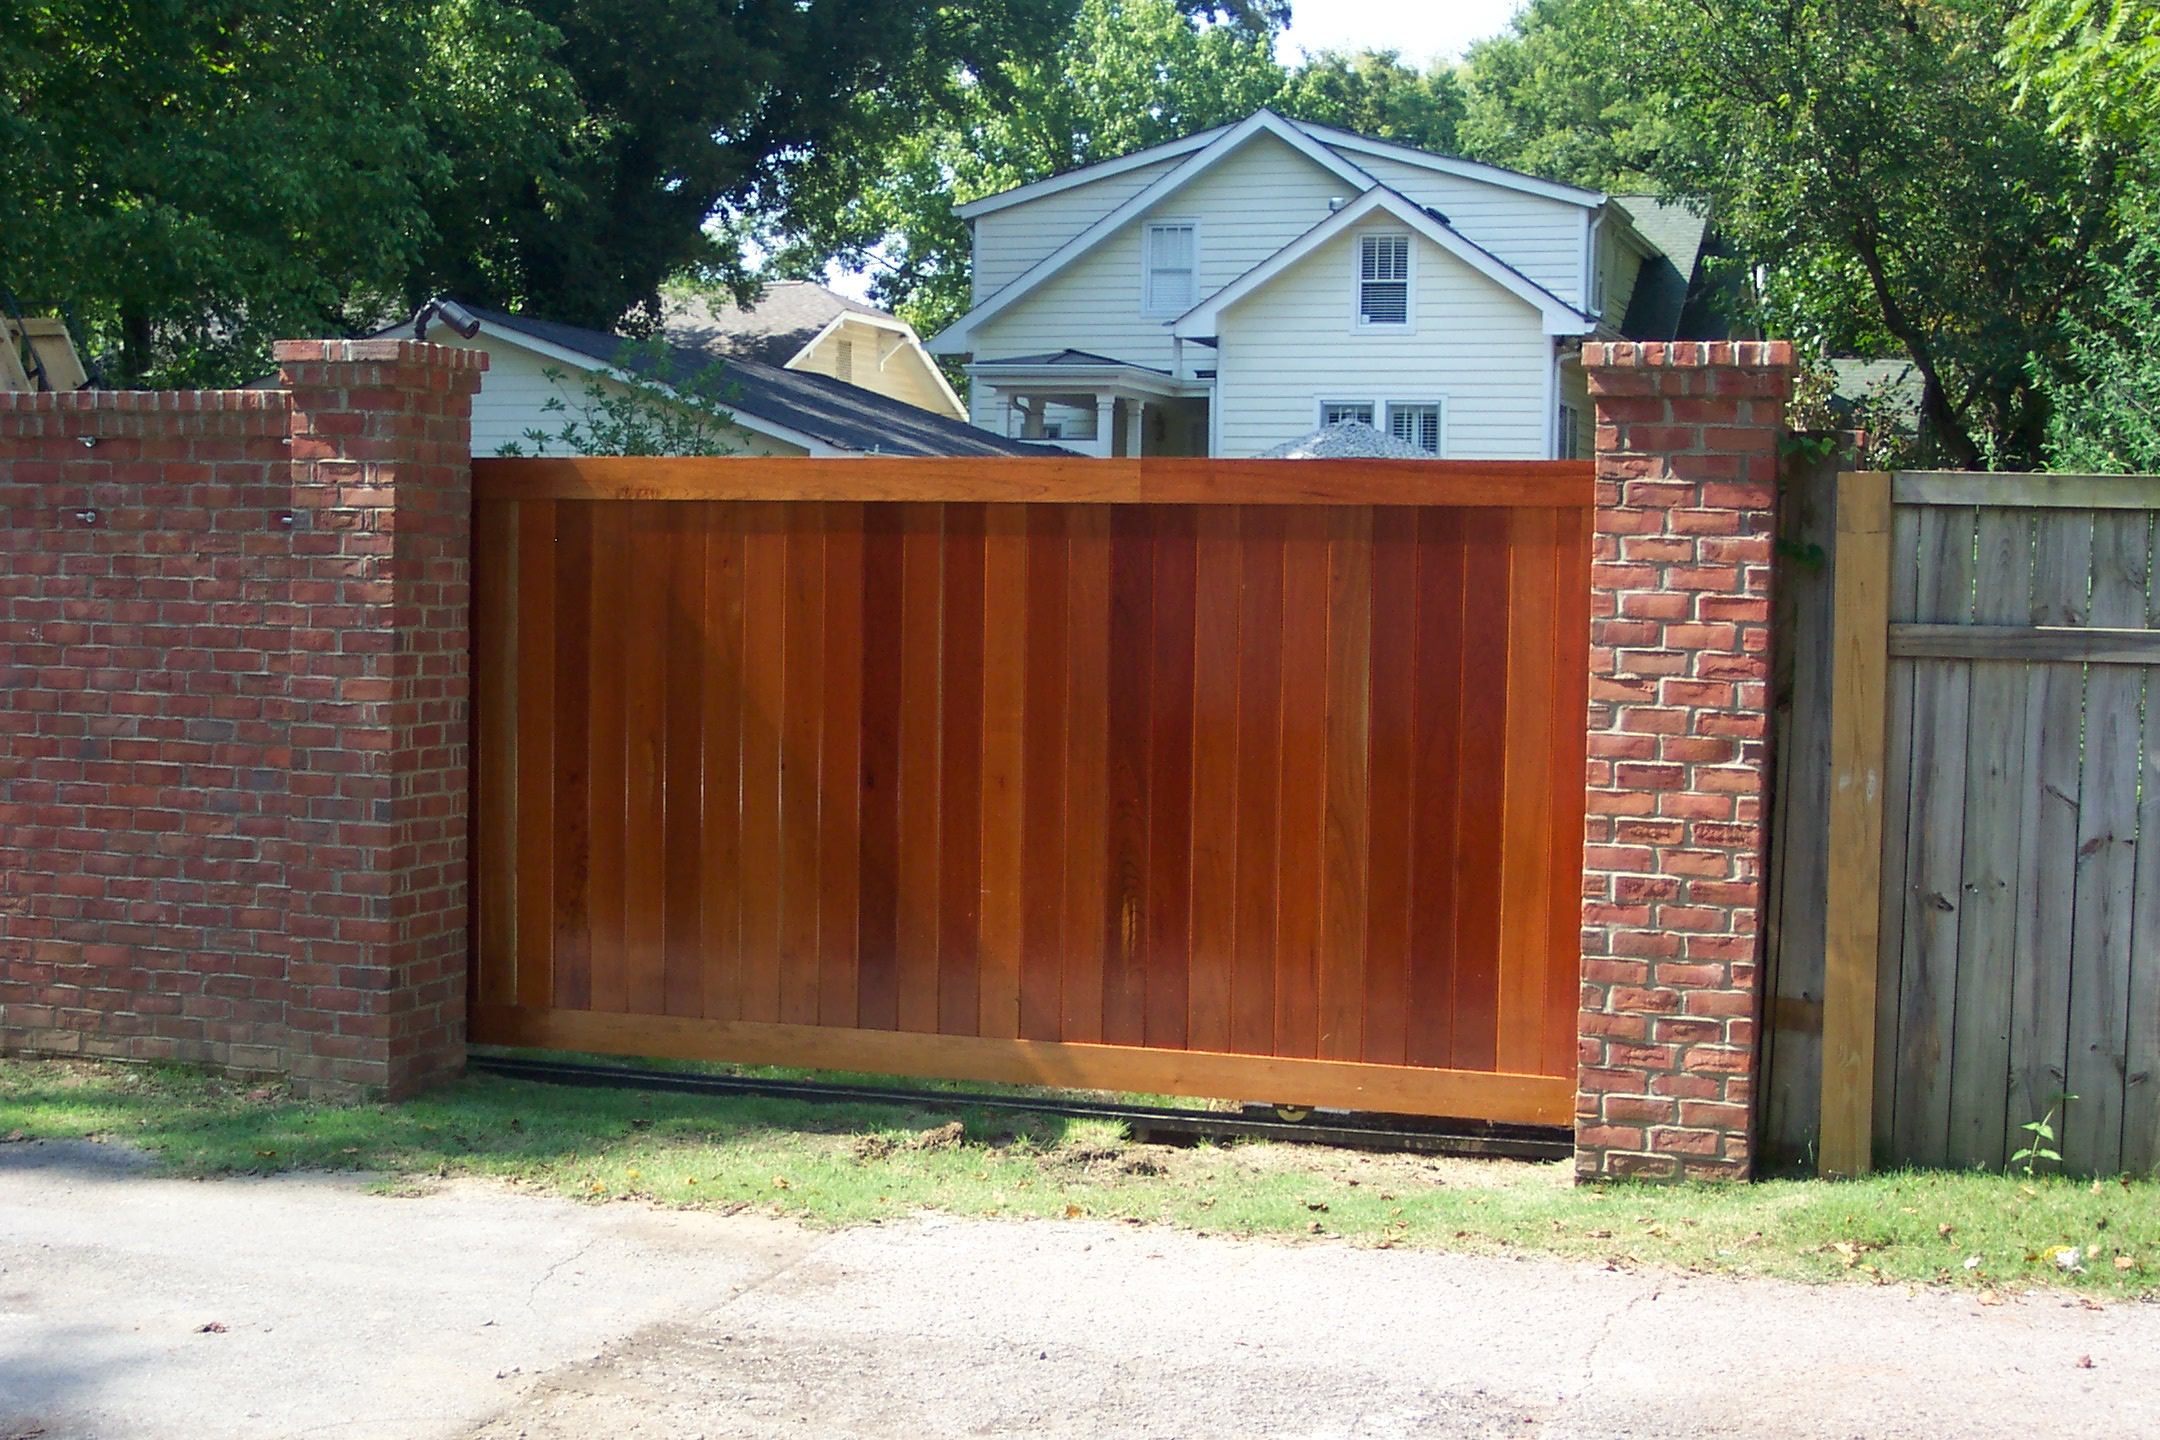 Wood driveway gate design irvine wood gates oc2